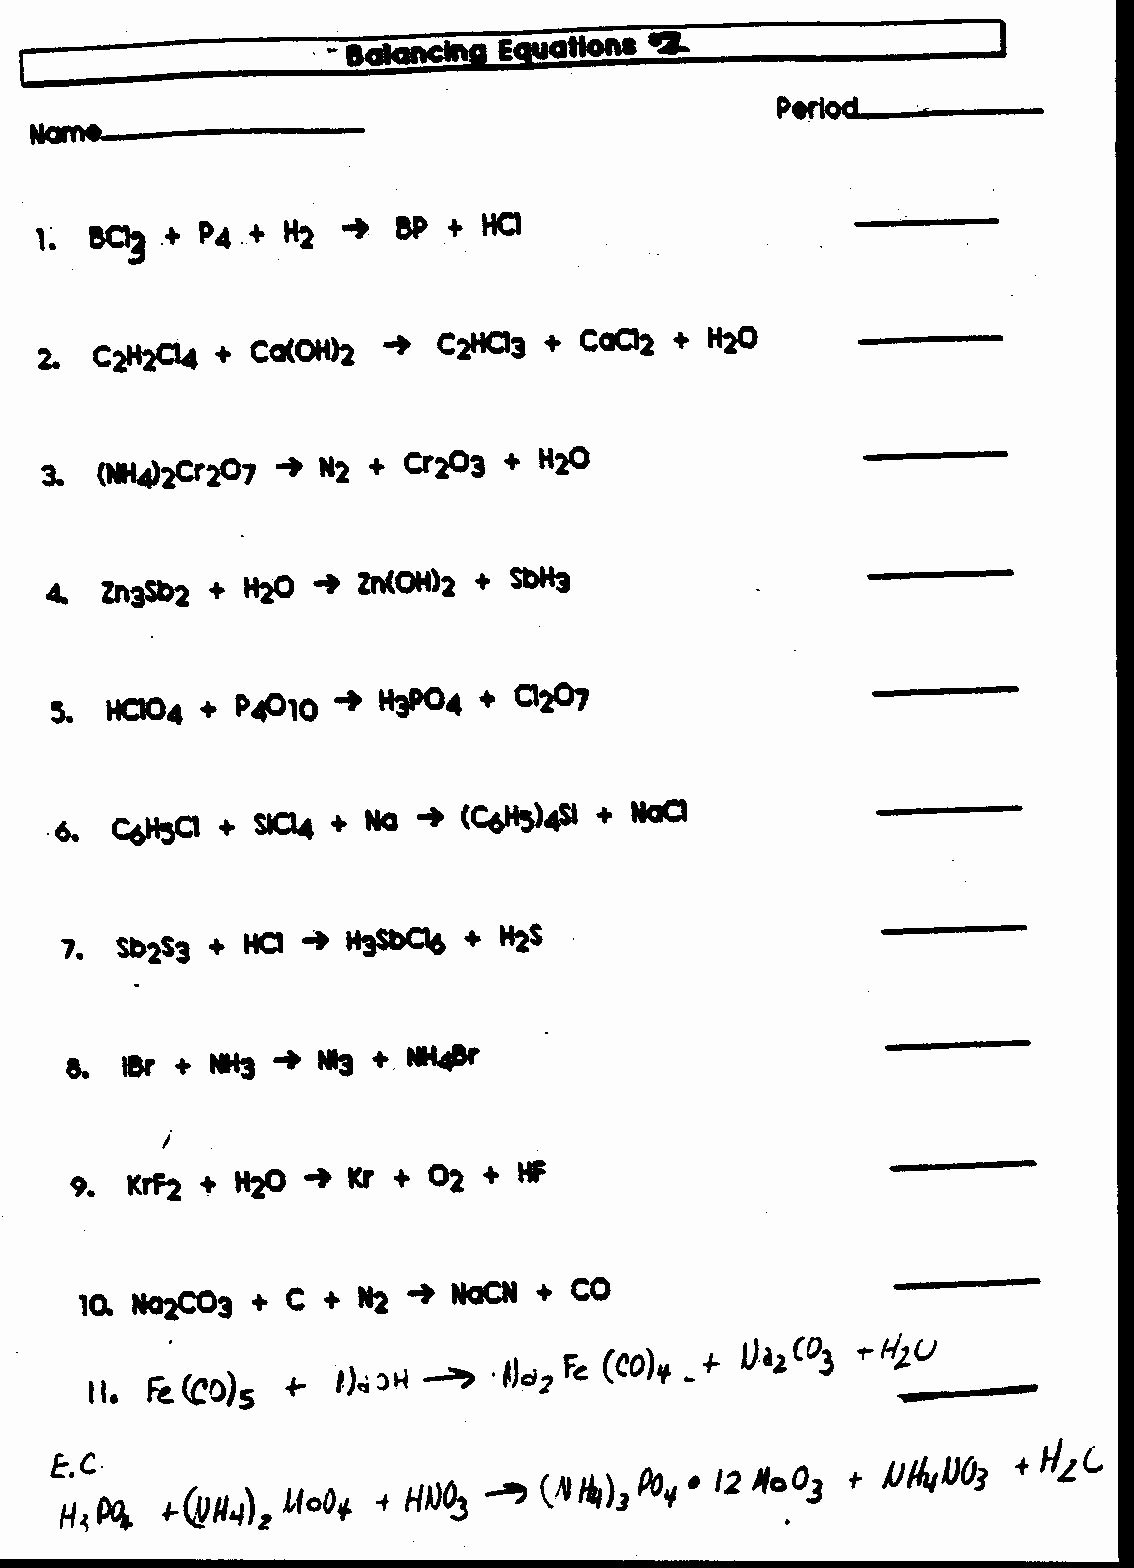 Balancing Chemical Equations Worksheet Answers Inspirational Balancing Equations Worksheet Health and Fitness Training